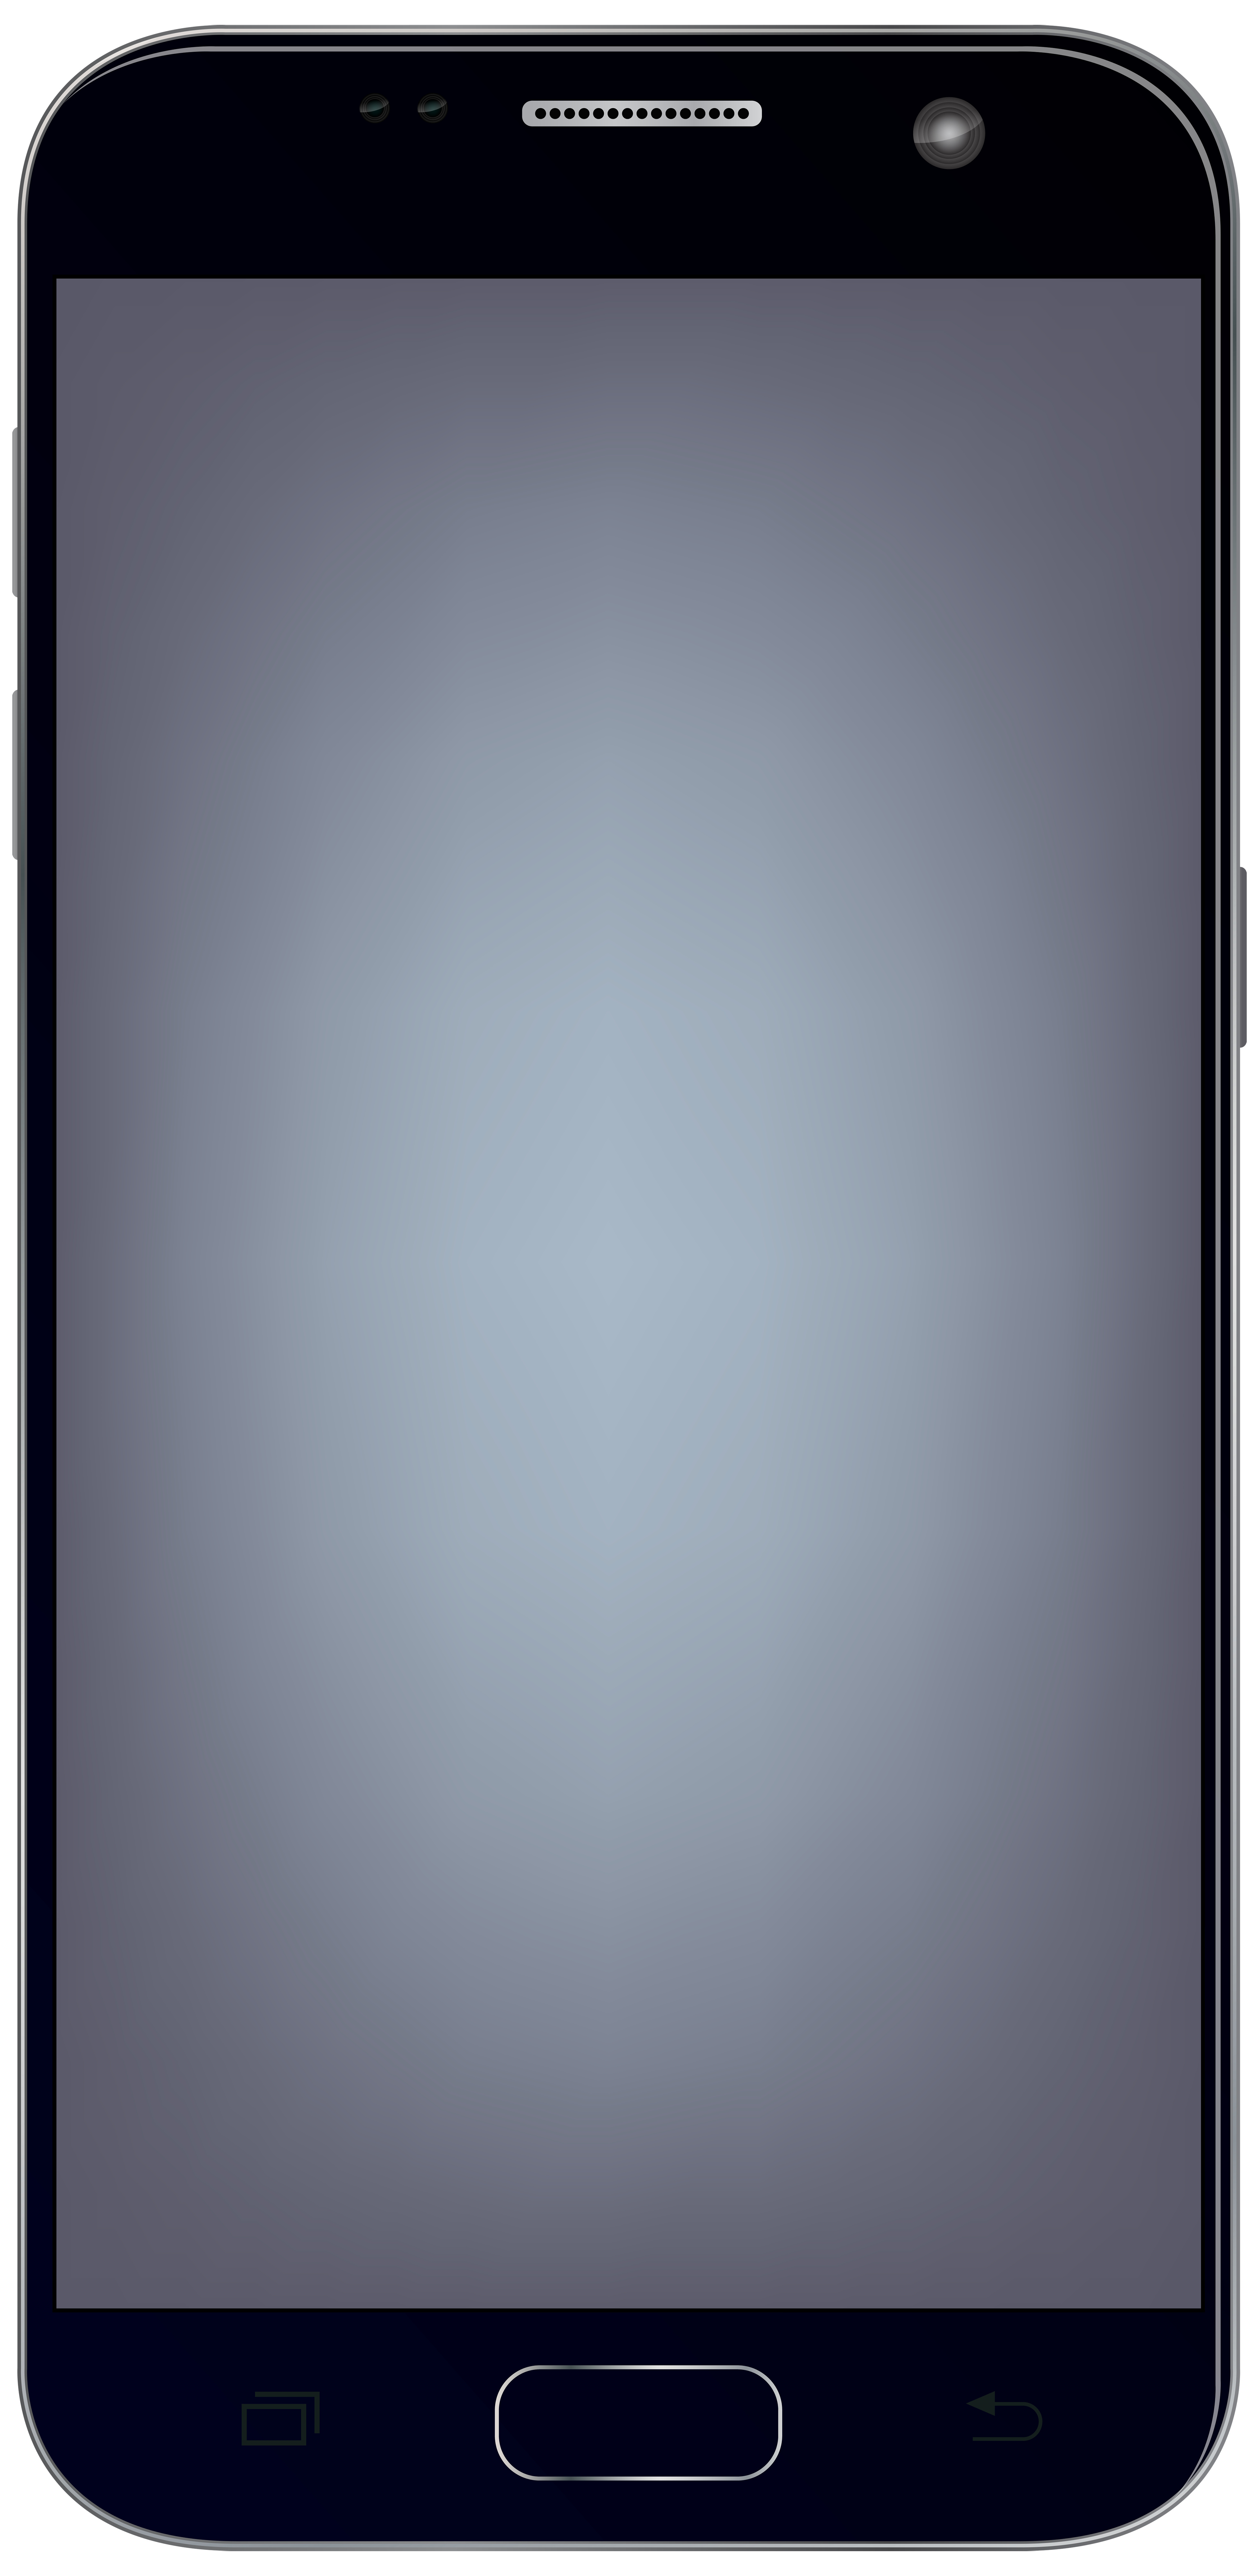 3911x8000 Large Smartphone Png Clip Art Image